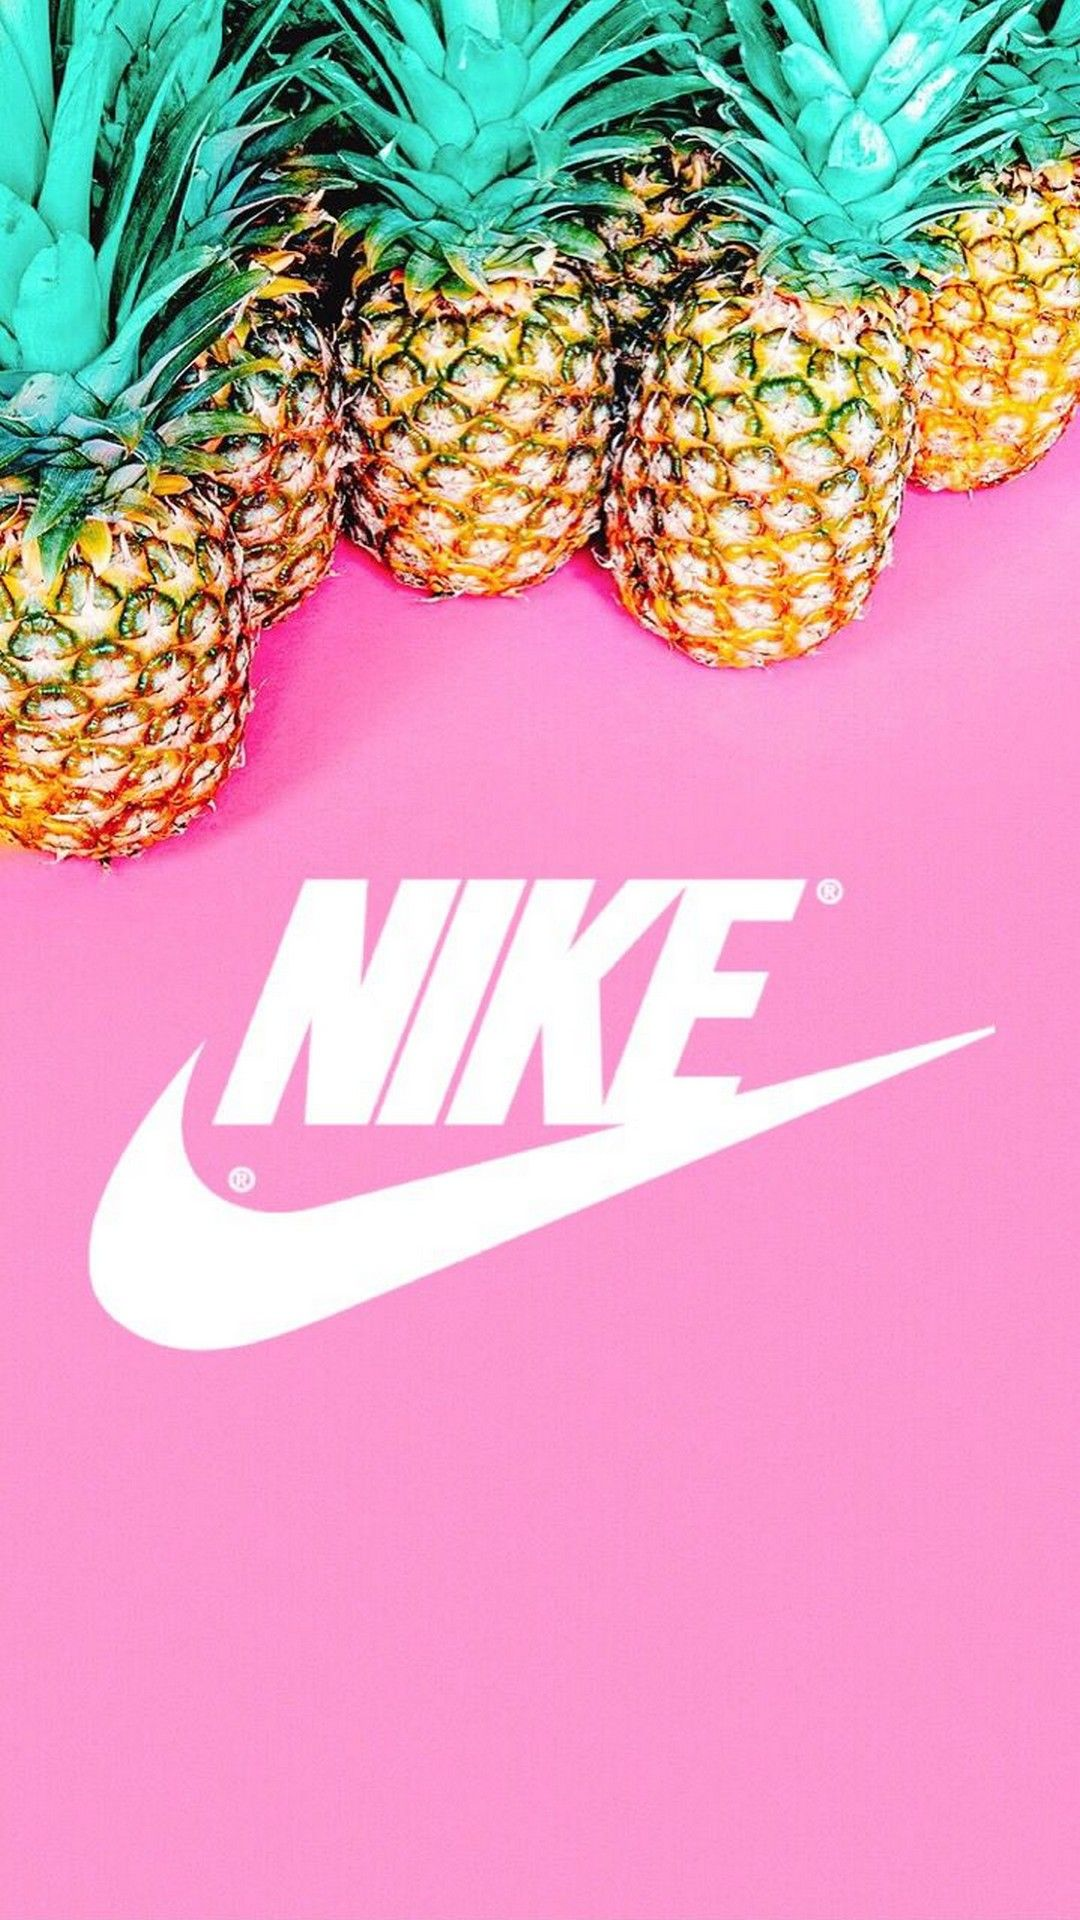 Nike Pineapple Pink Background Best Iphone Wallpaper Adidas Wallpapers Nike Wallpaper Iphone Pineapple Wallpaper